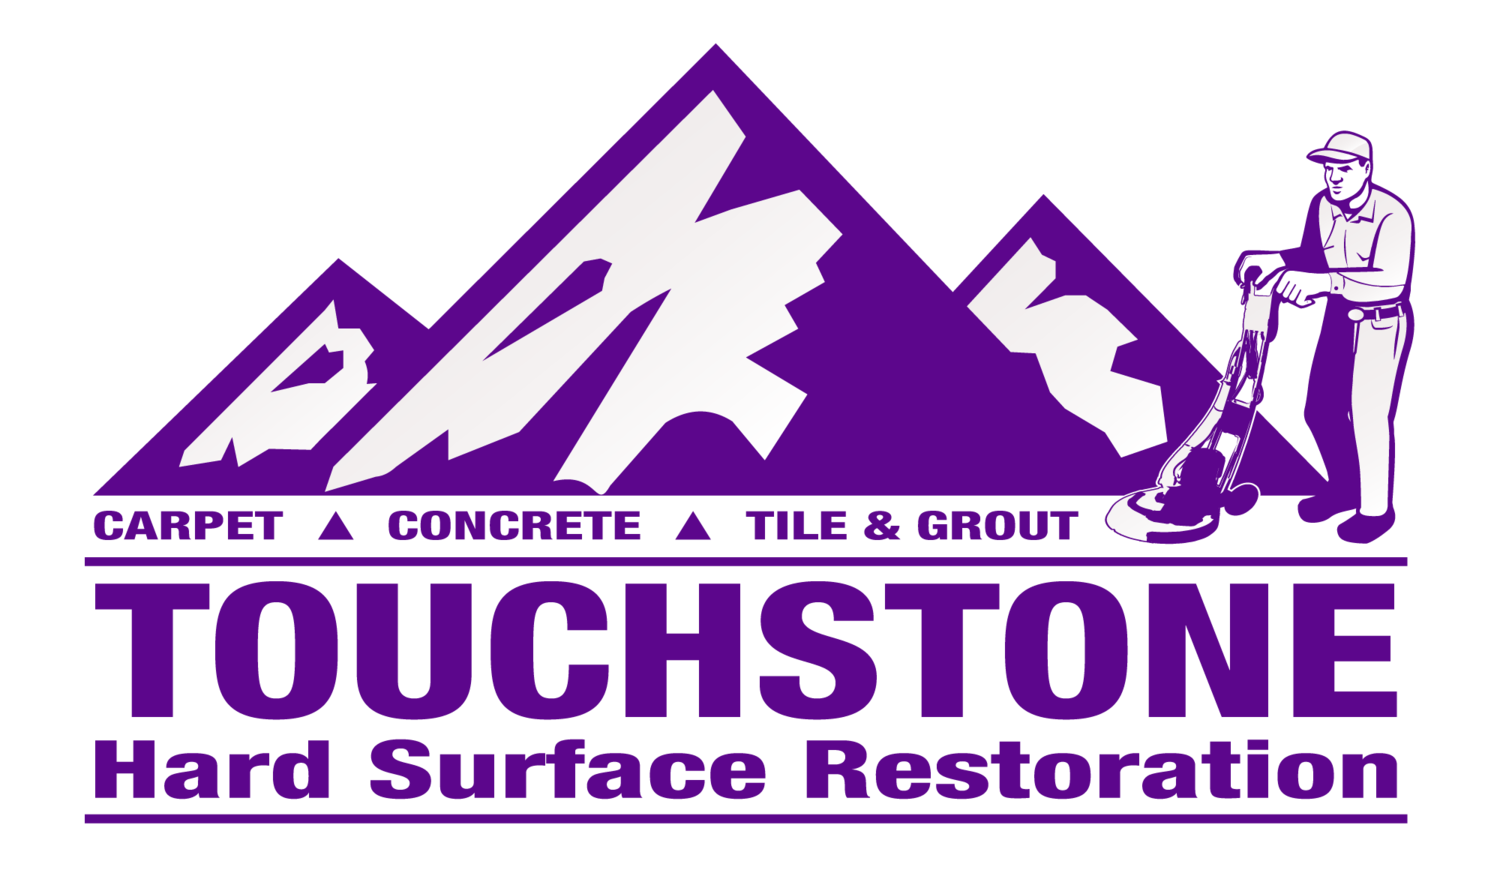 Touchstone Hard Surface Restoration